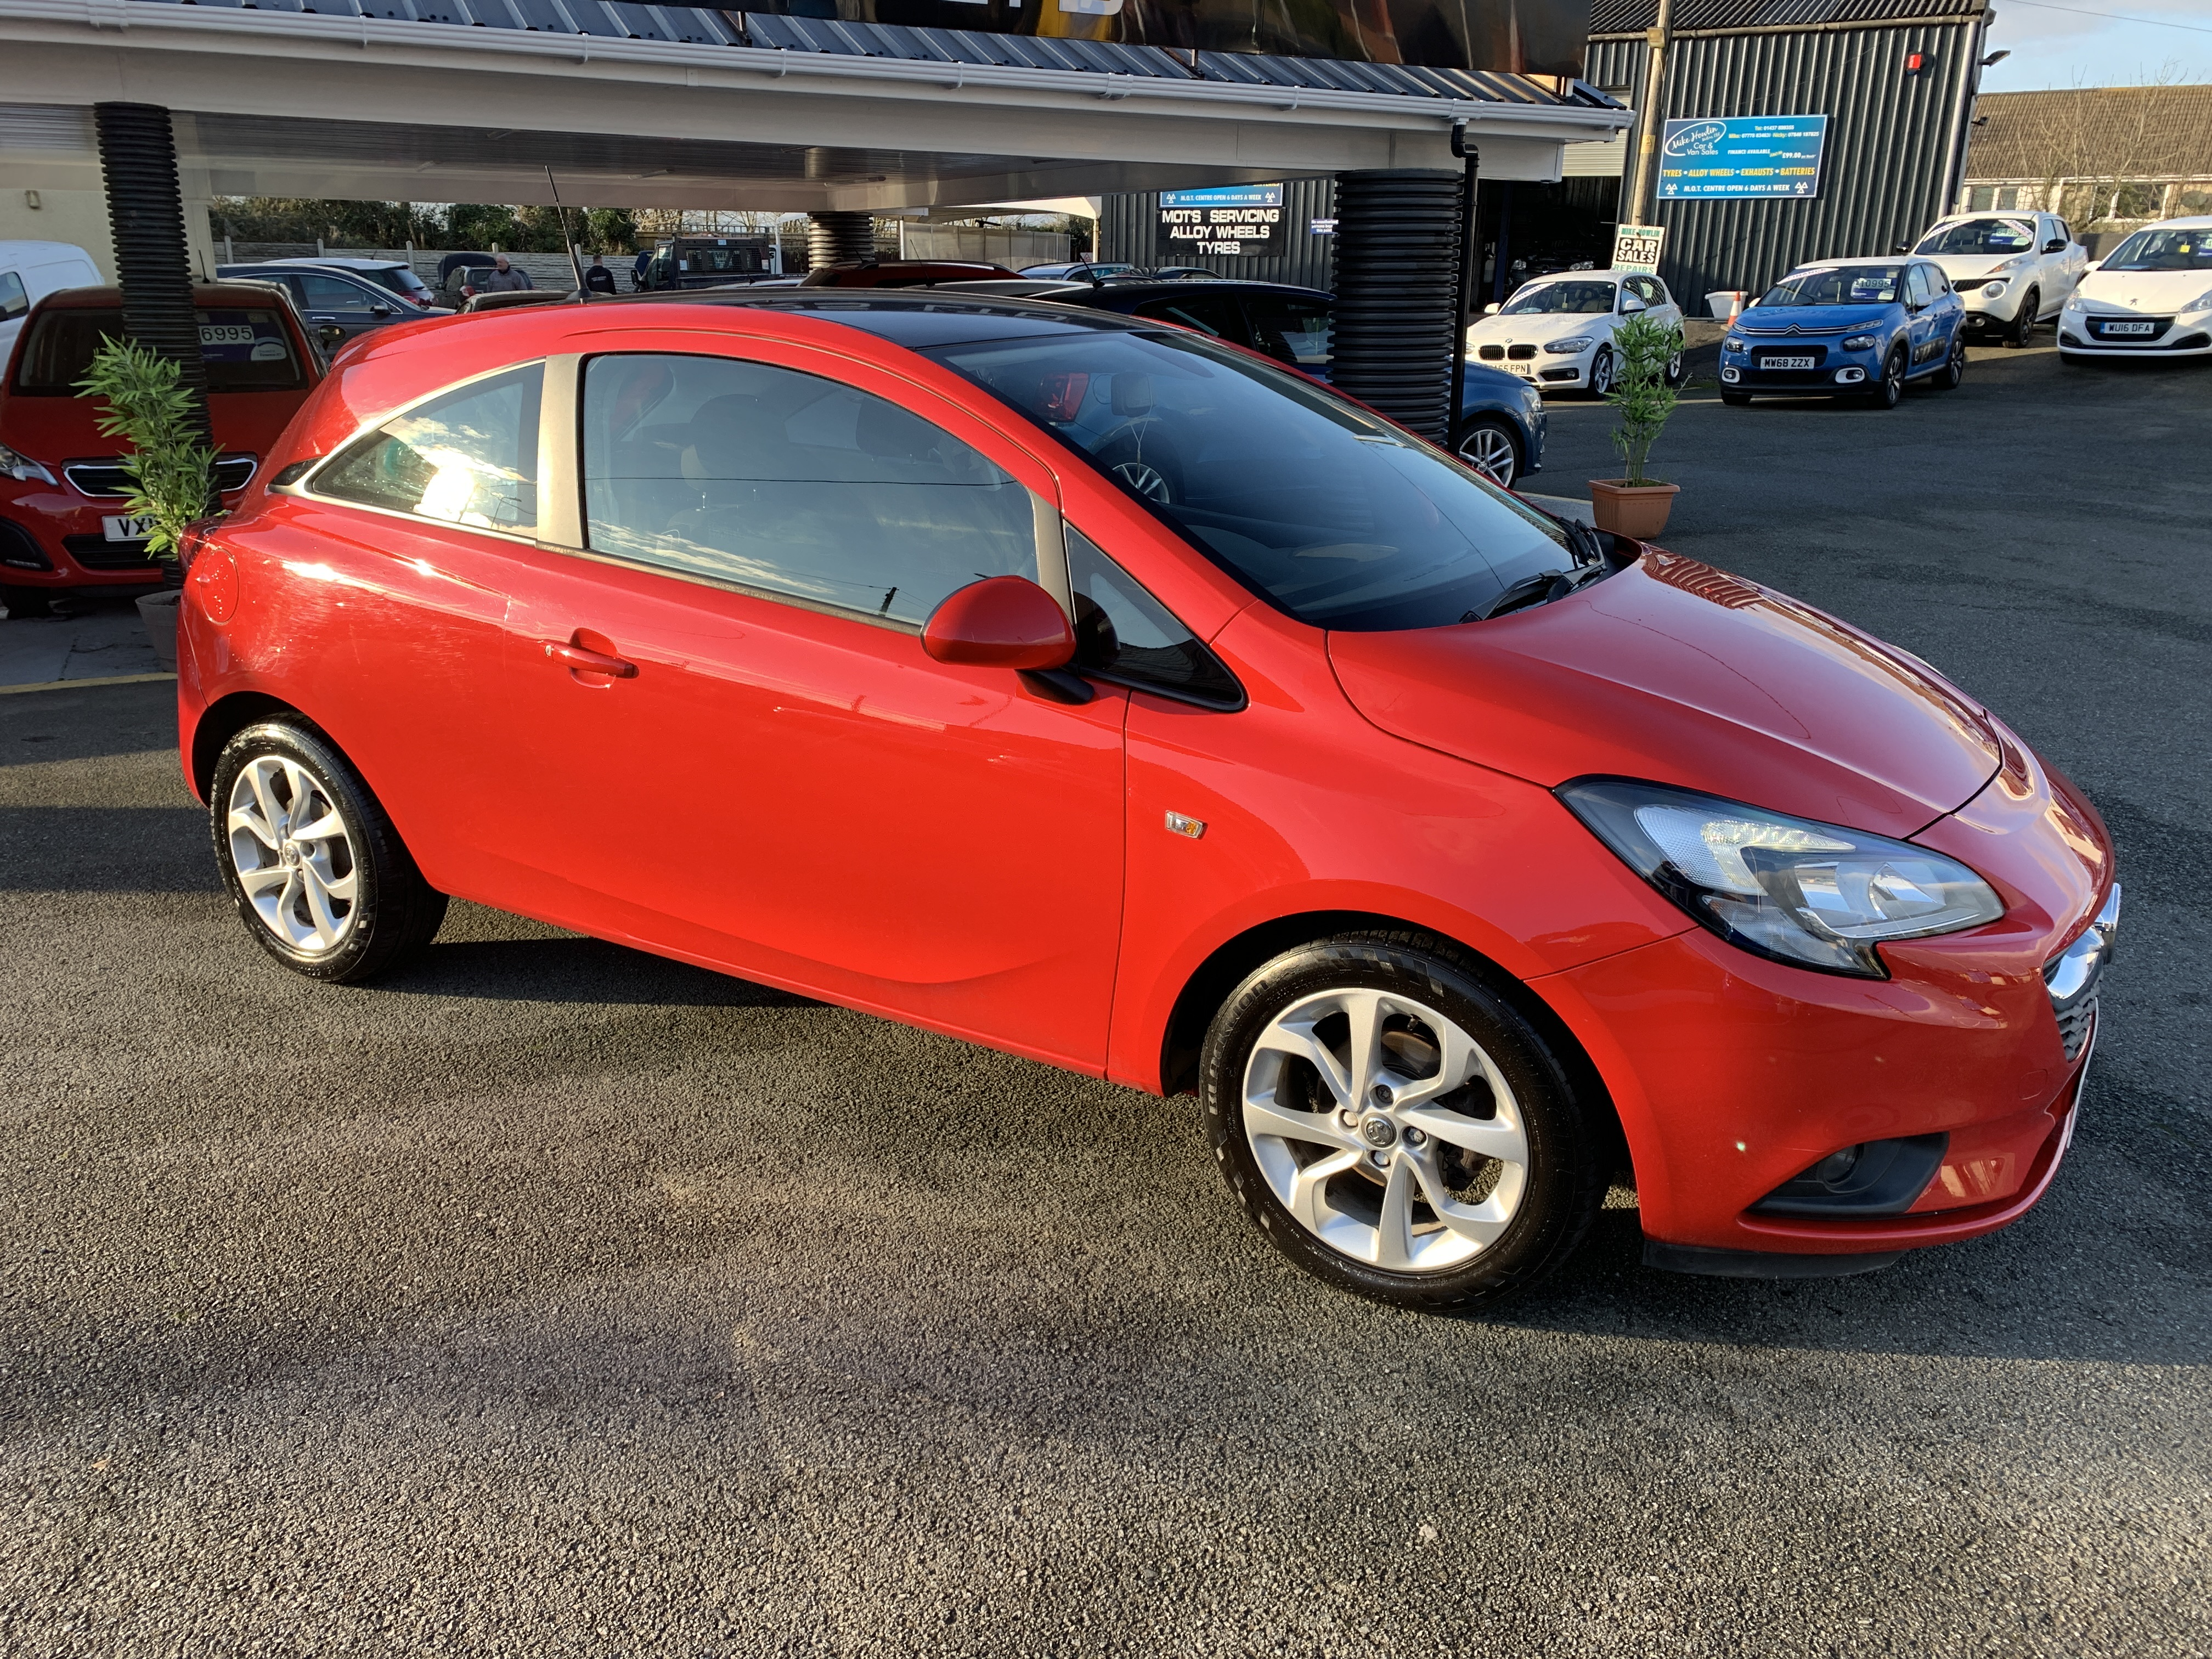 Vauxhall CORSA EXCITE AC ECOFLEX for sale at Mike Howlin Motor Sales Pembrokeshire